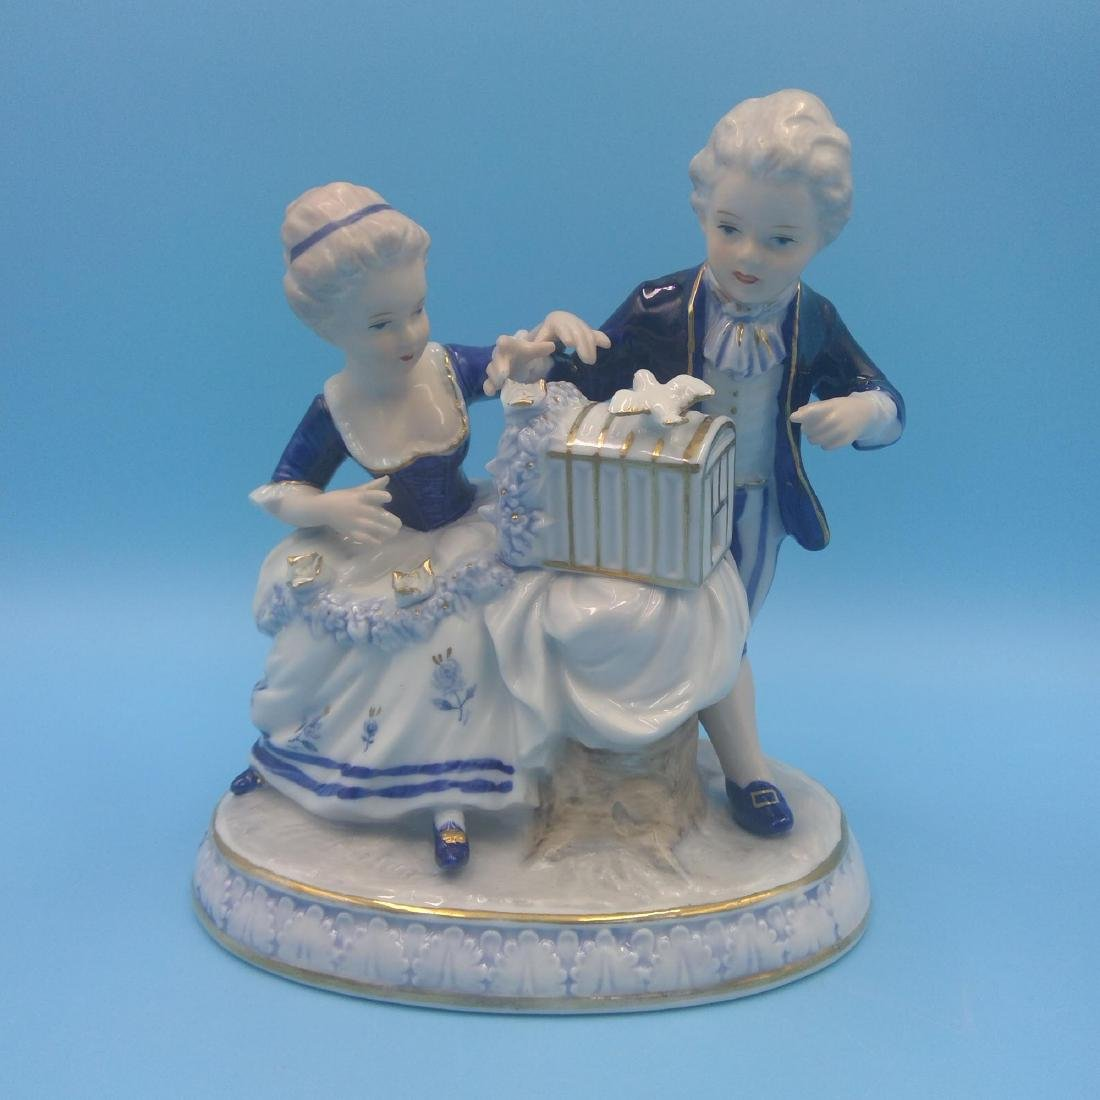 GROUP OF 4 ANTIQUE GERMAN PORCELAIN FIGURINES - 8